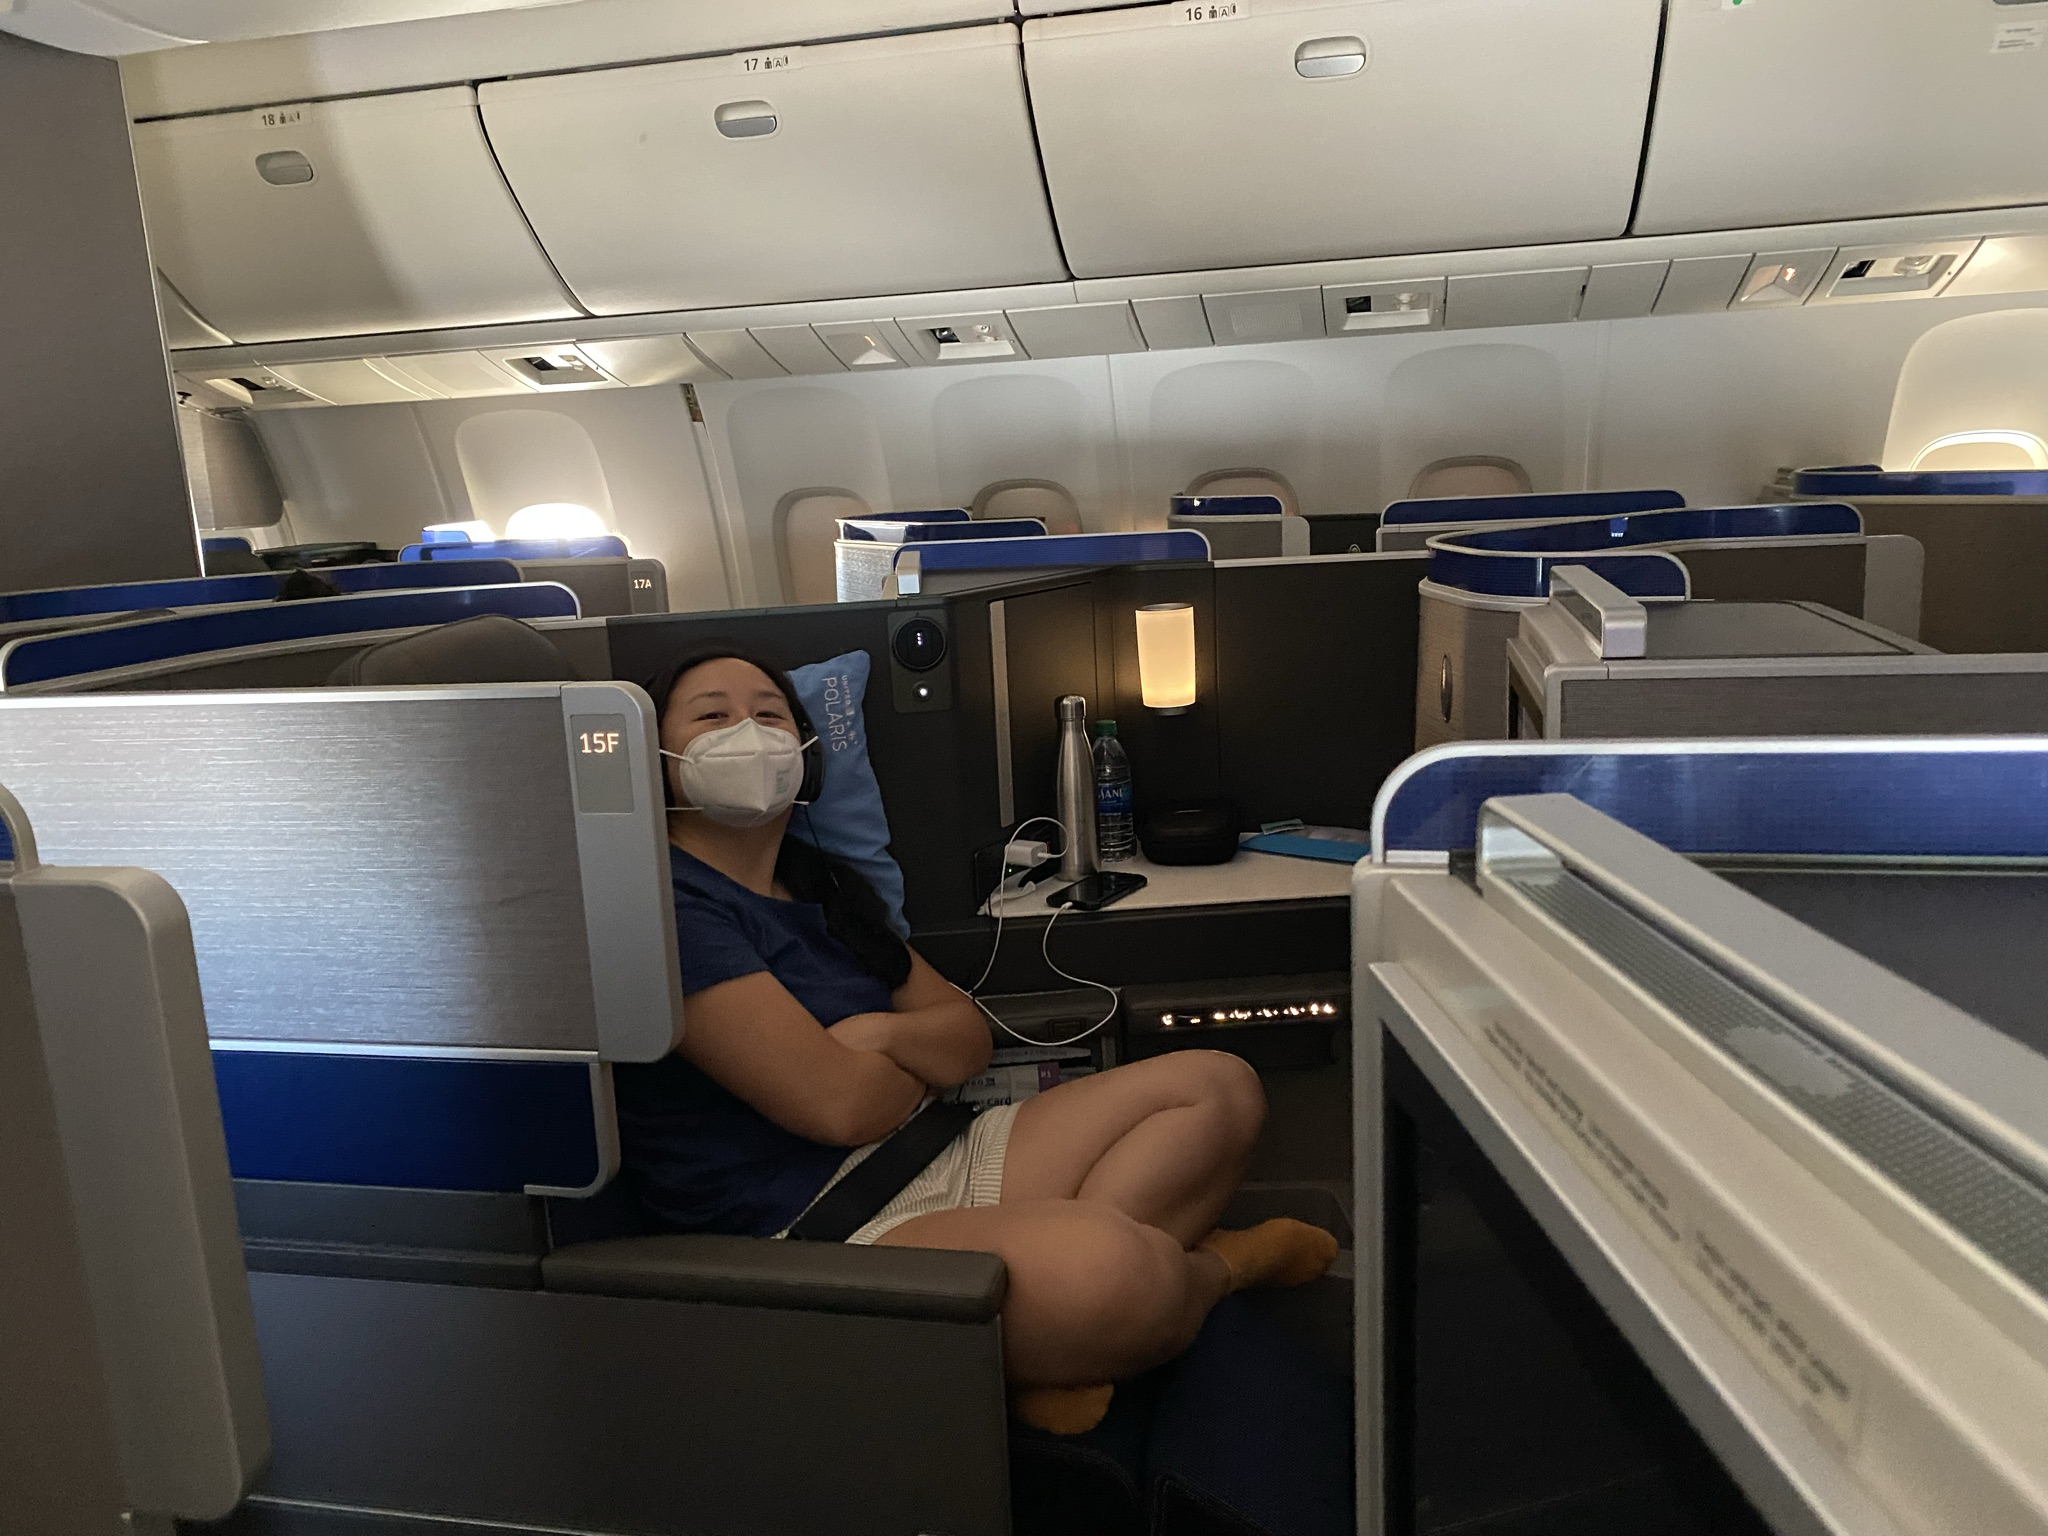 United Airlines' 767-300ER Polaris Business Class seat with a cross-legged female occupant in a white mask